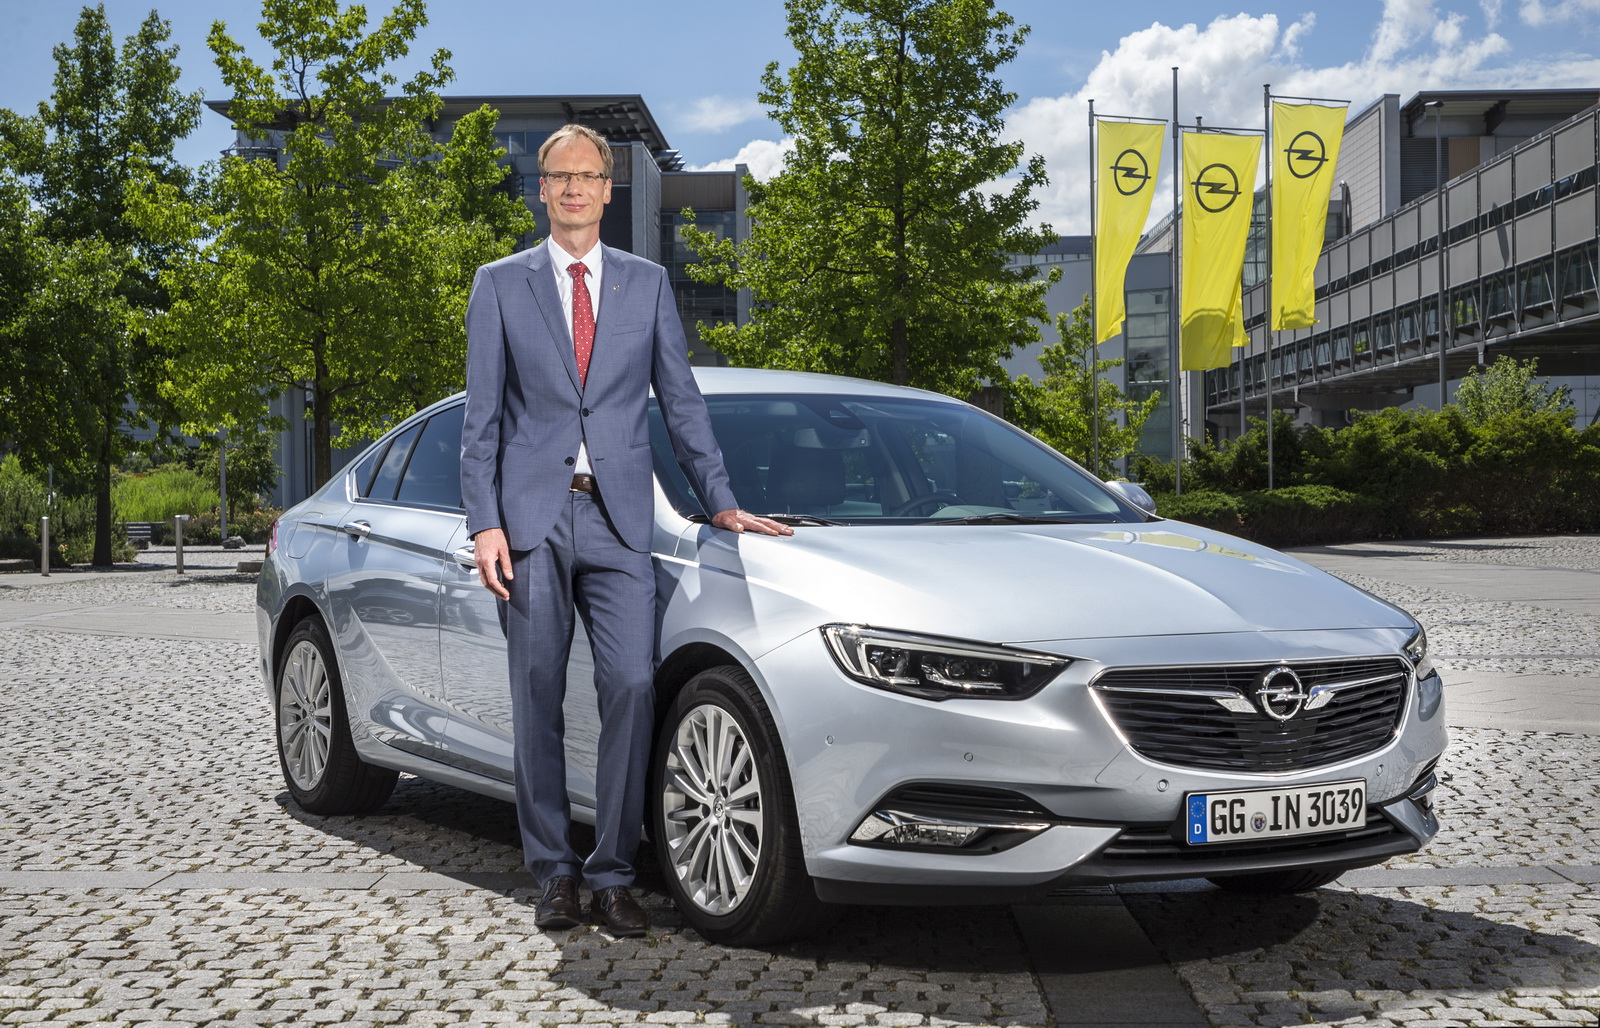 opel s turnaround plan includes evs more markets and a return to profit by 2020 carscoops. Black Bedroom Furniture Sets. Home Design Ideas